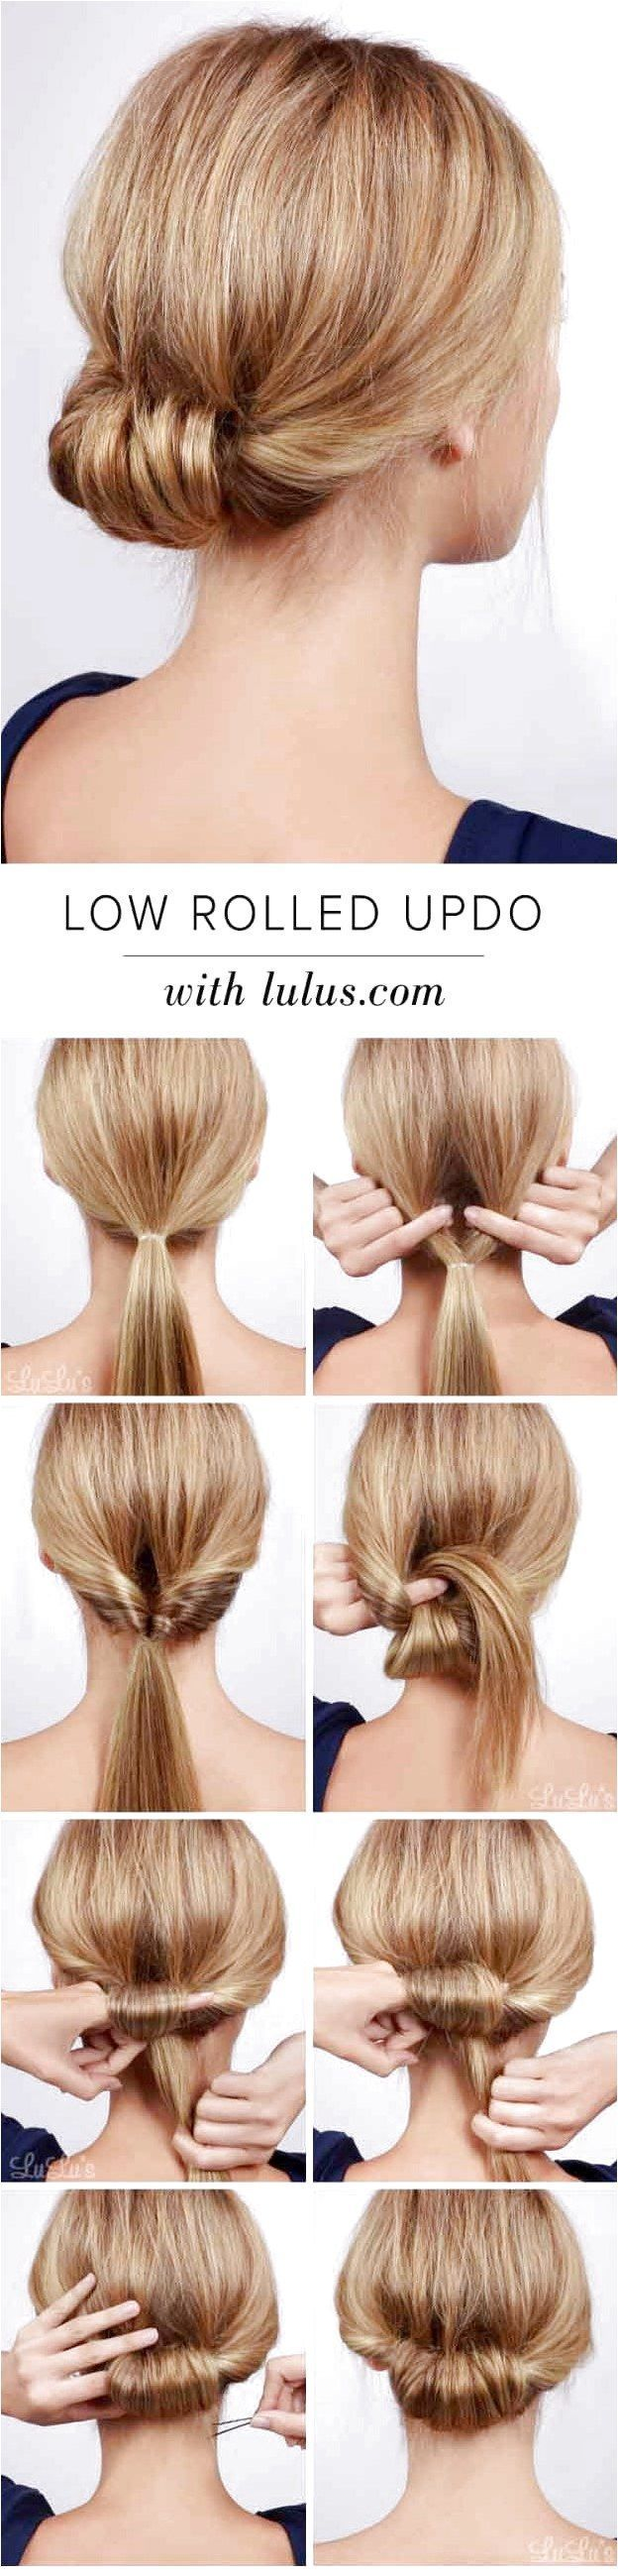 Best Hairstyles For Brides - Low Rolled Updo Hair Tutorial-Amazing Hairstyles ... - Braided Hairstyle - Wedding Hairstyles - #Best Brides #Hairstyle ...